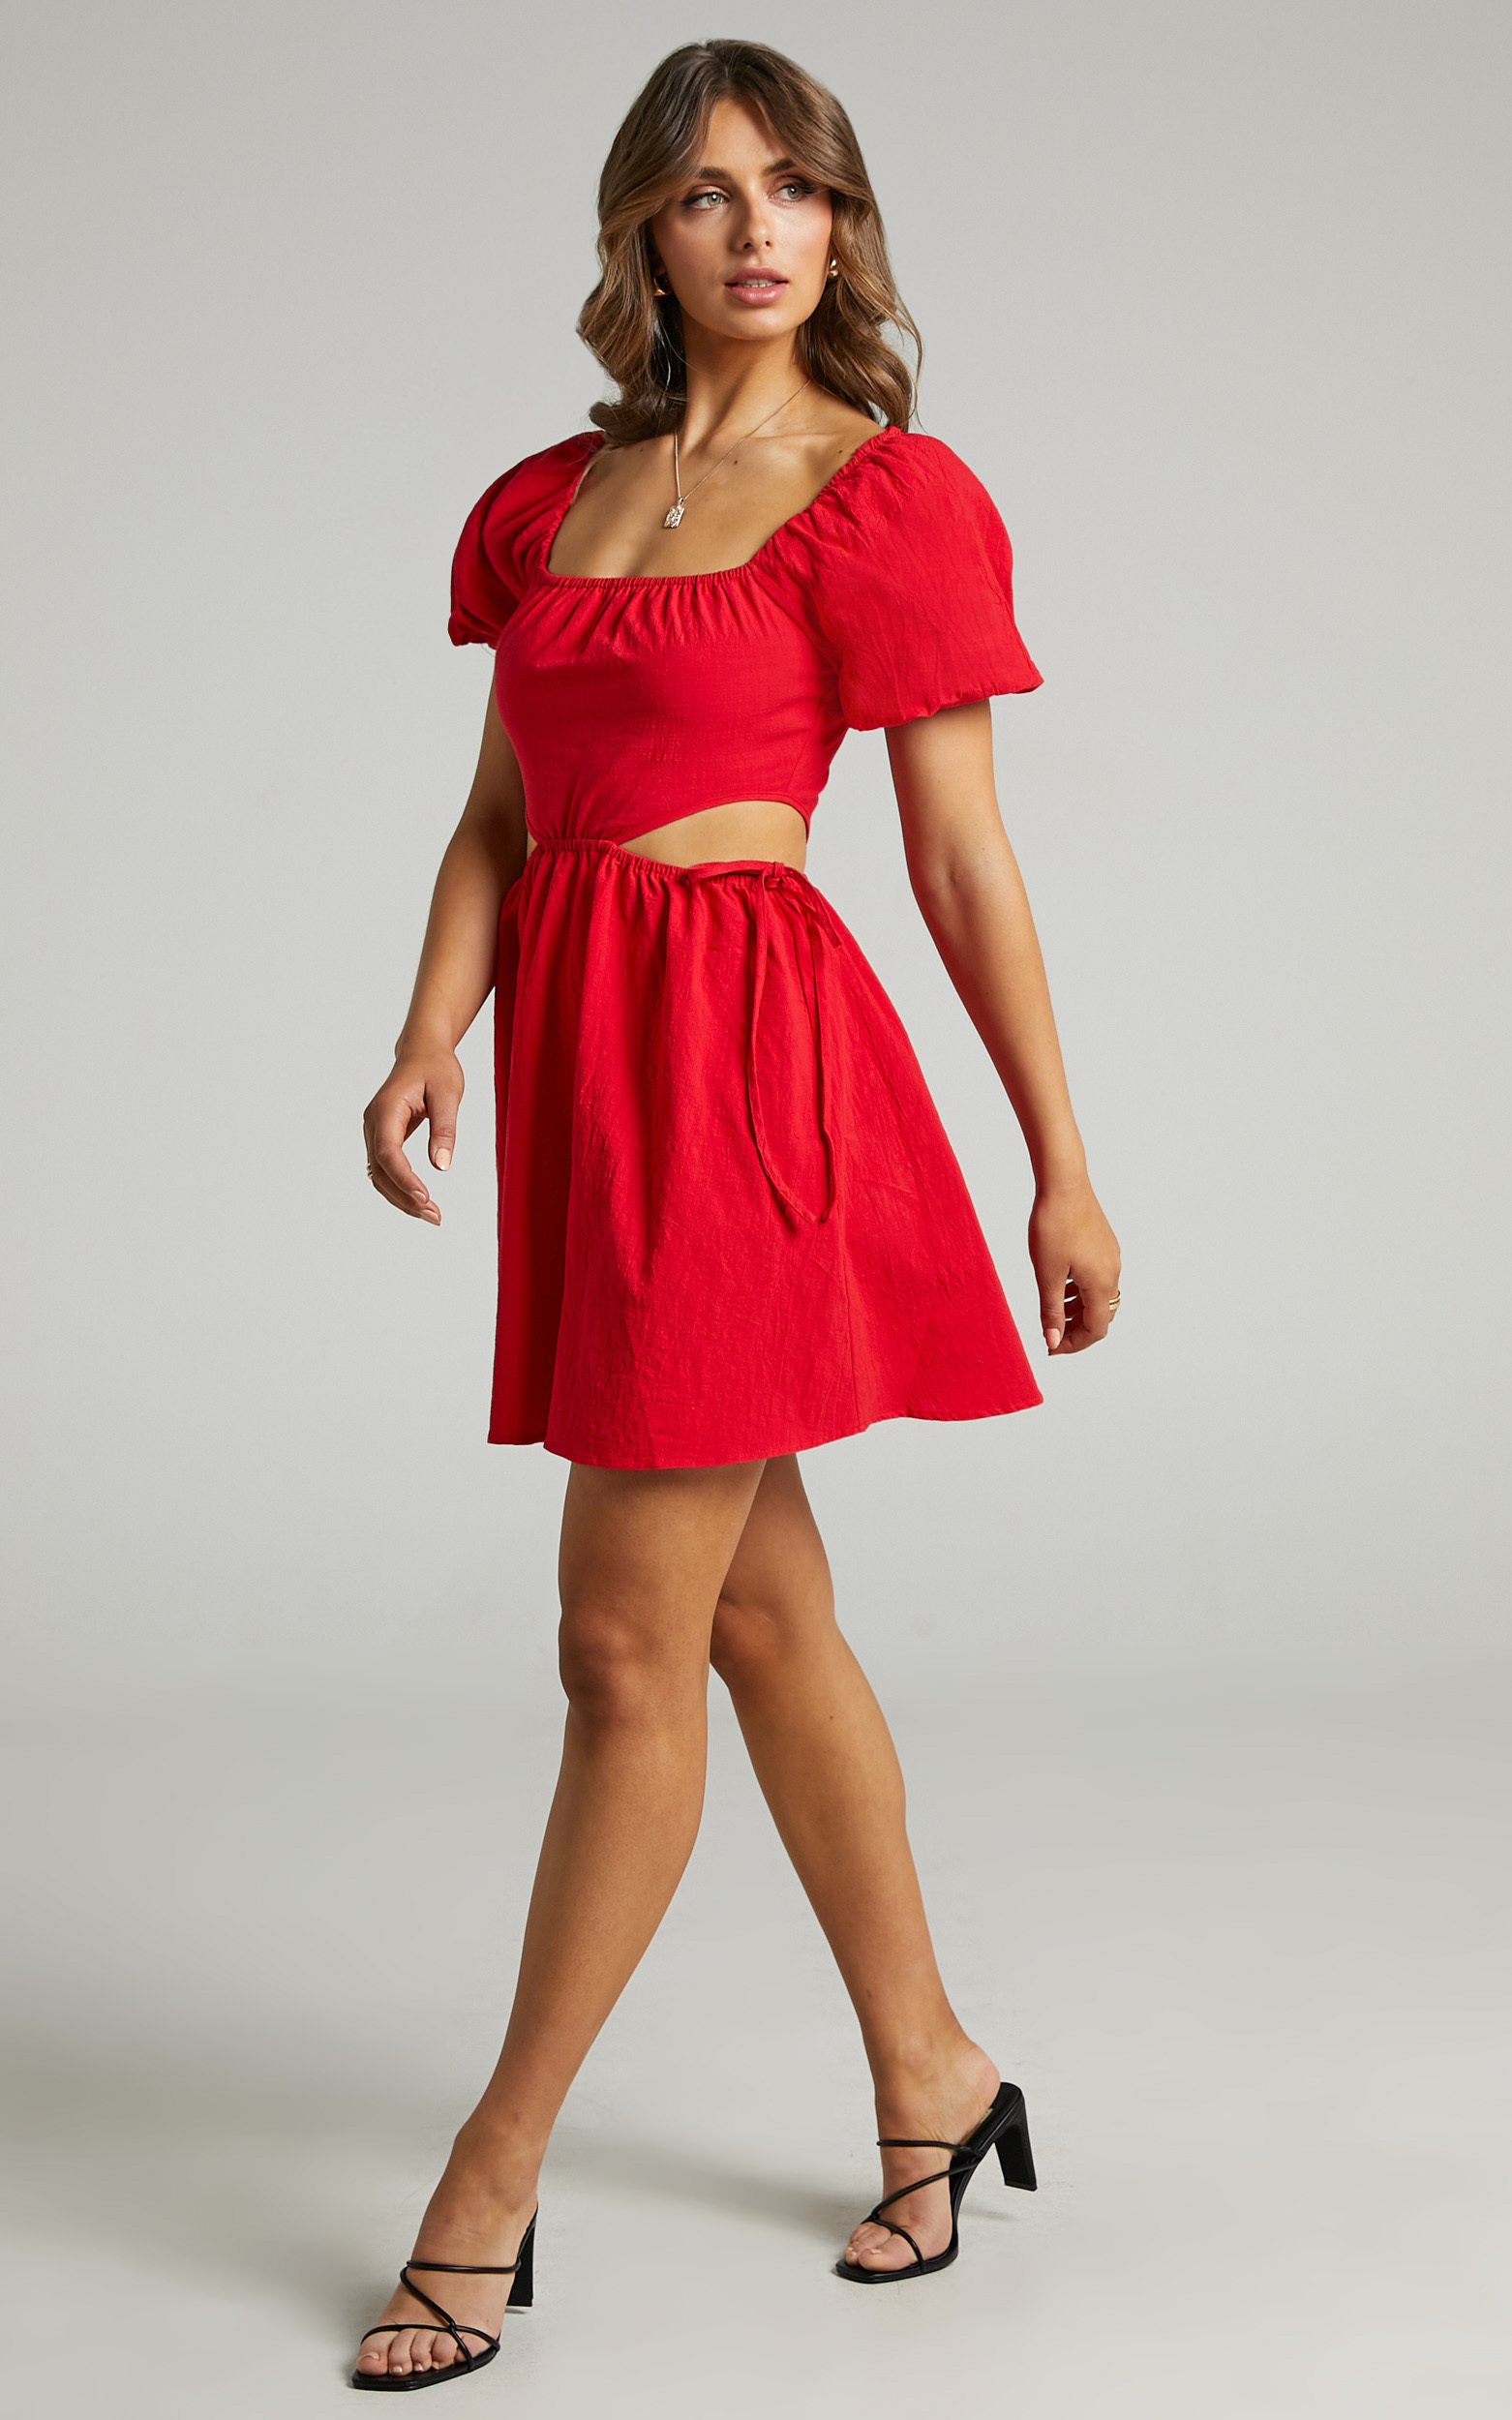 Loriella Waist Cut Out Skater Skirt Dress in Red - 06, RED1, hi-res image number null